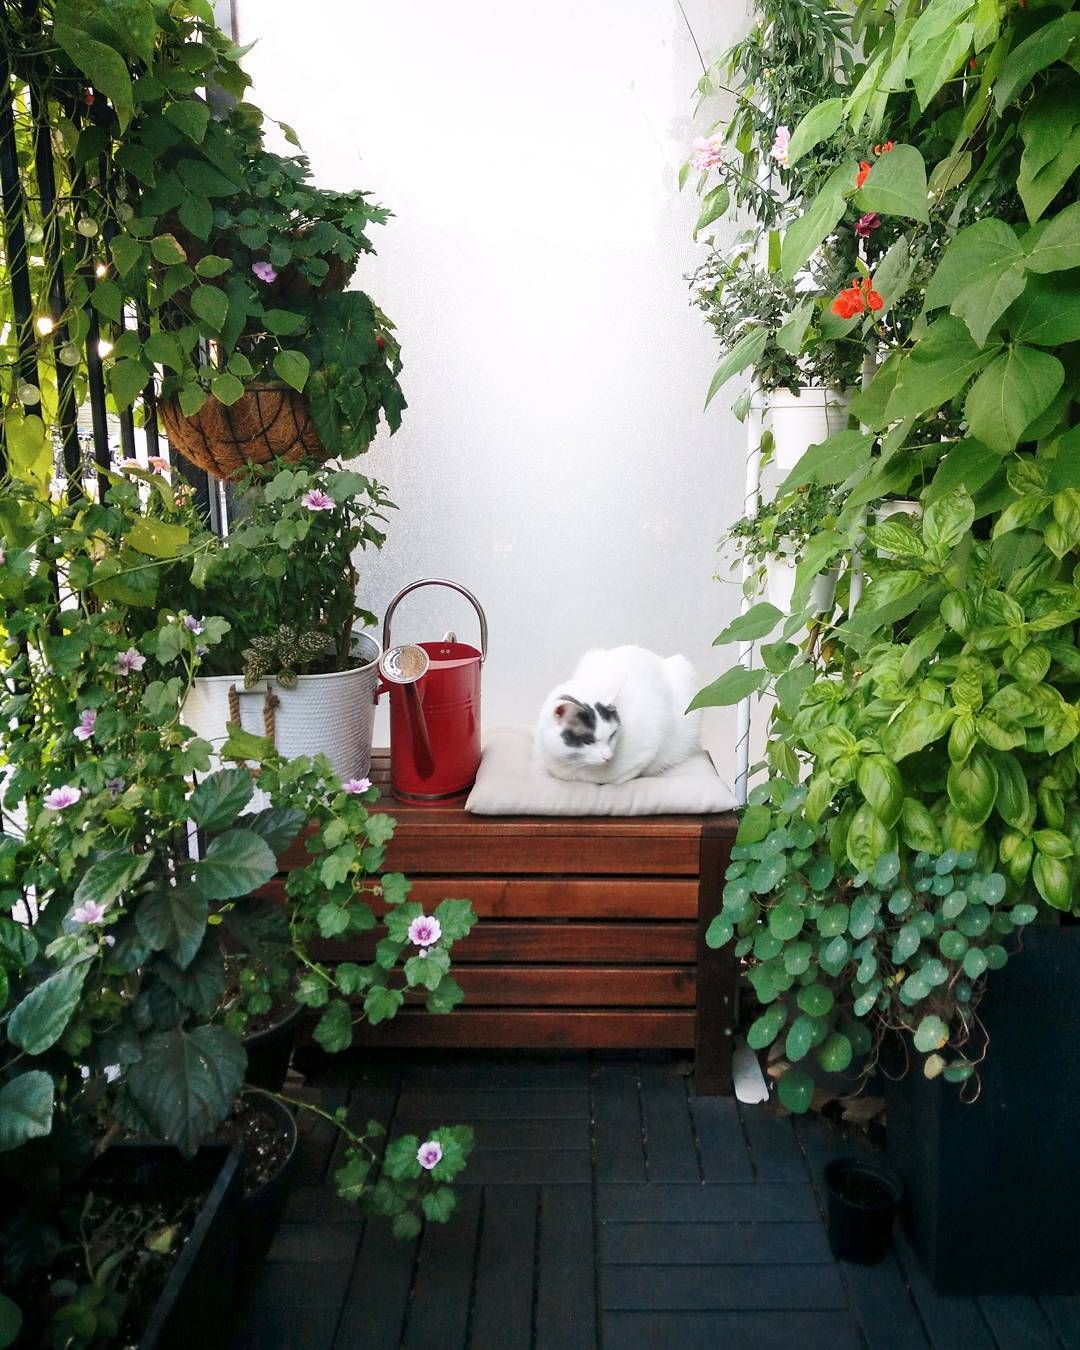 Small space gardening | Living in a green workspace | instagram.com ...